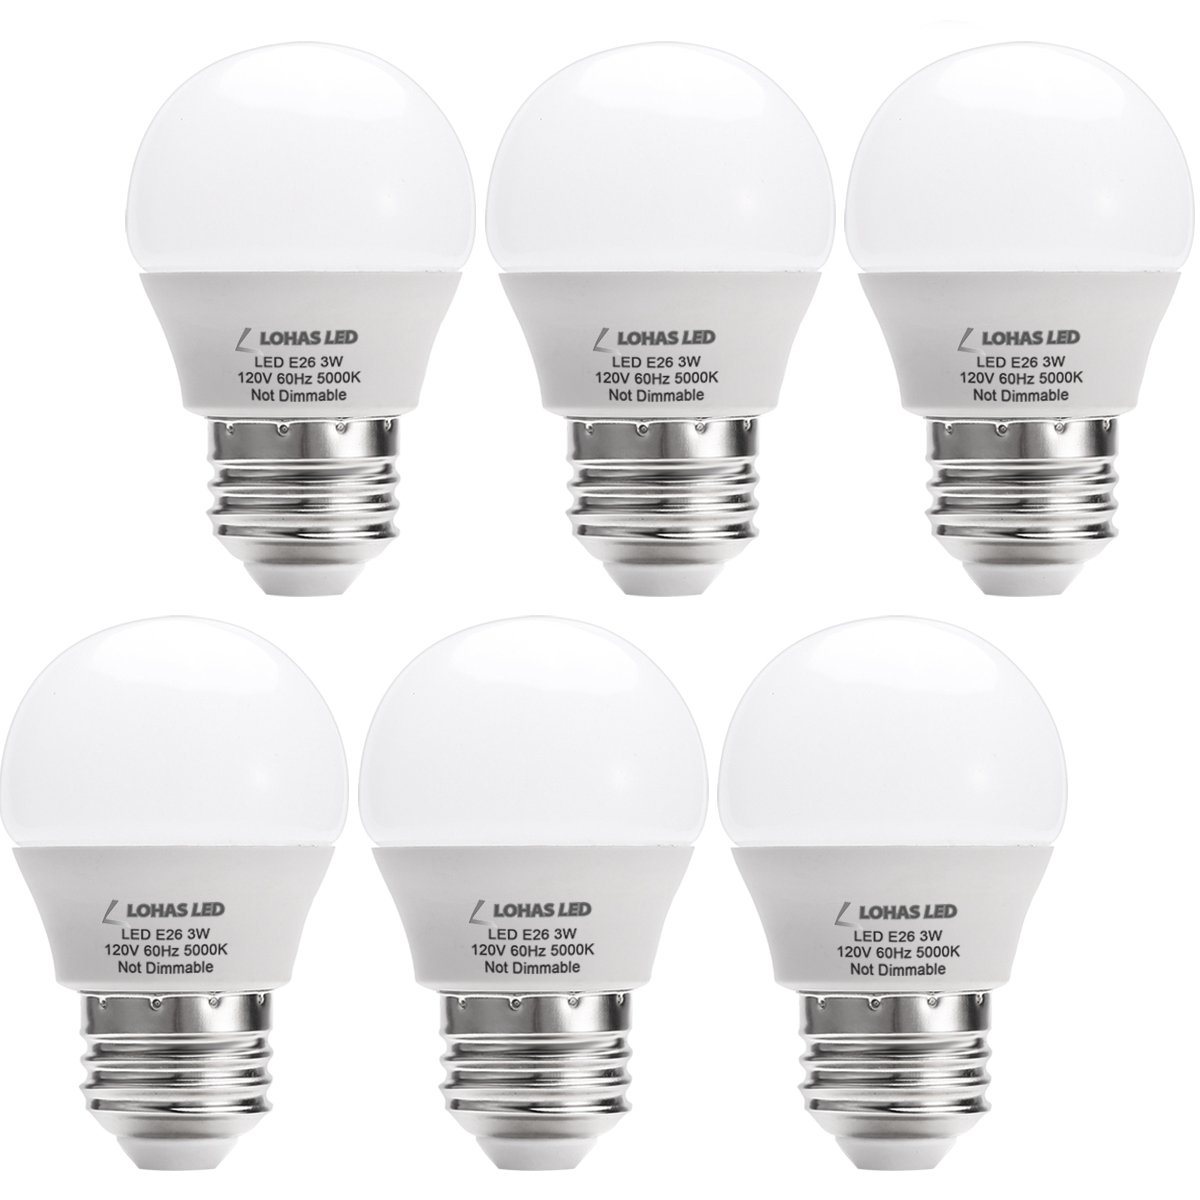 LOHAS LH-BL-3W-5000k-6 G14(with UL Listed) 3W (25W Equivalent), LED Tiny, Small Night Bulbs 120V for Bedroom Ceiling Fan Table Lamp Light, Not-Dim 6PACK, Daylight 5000K, E26 Base